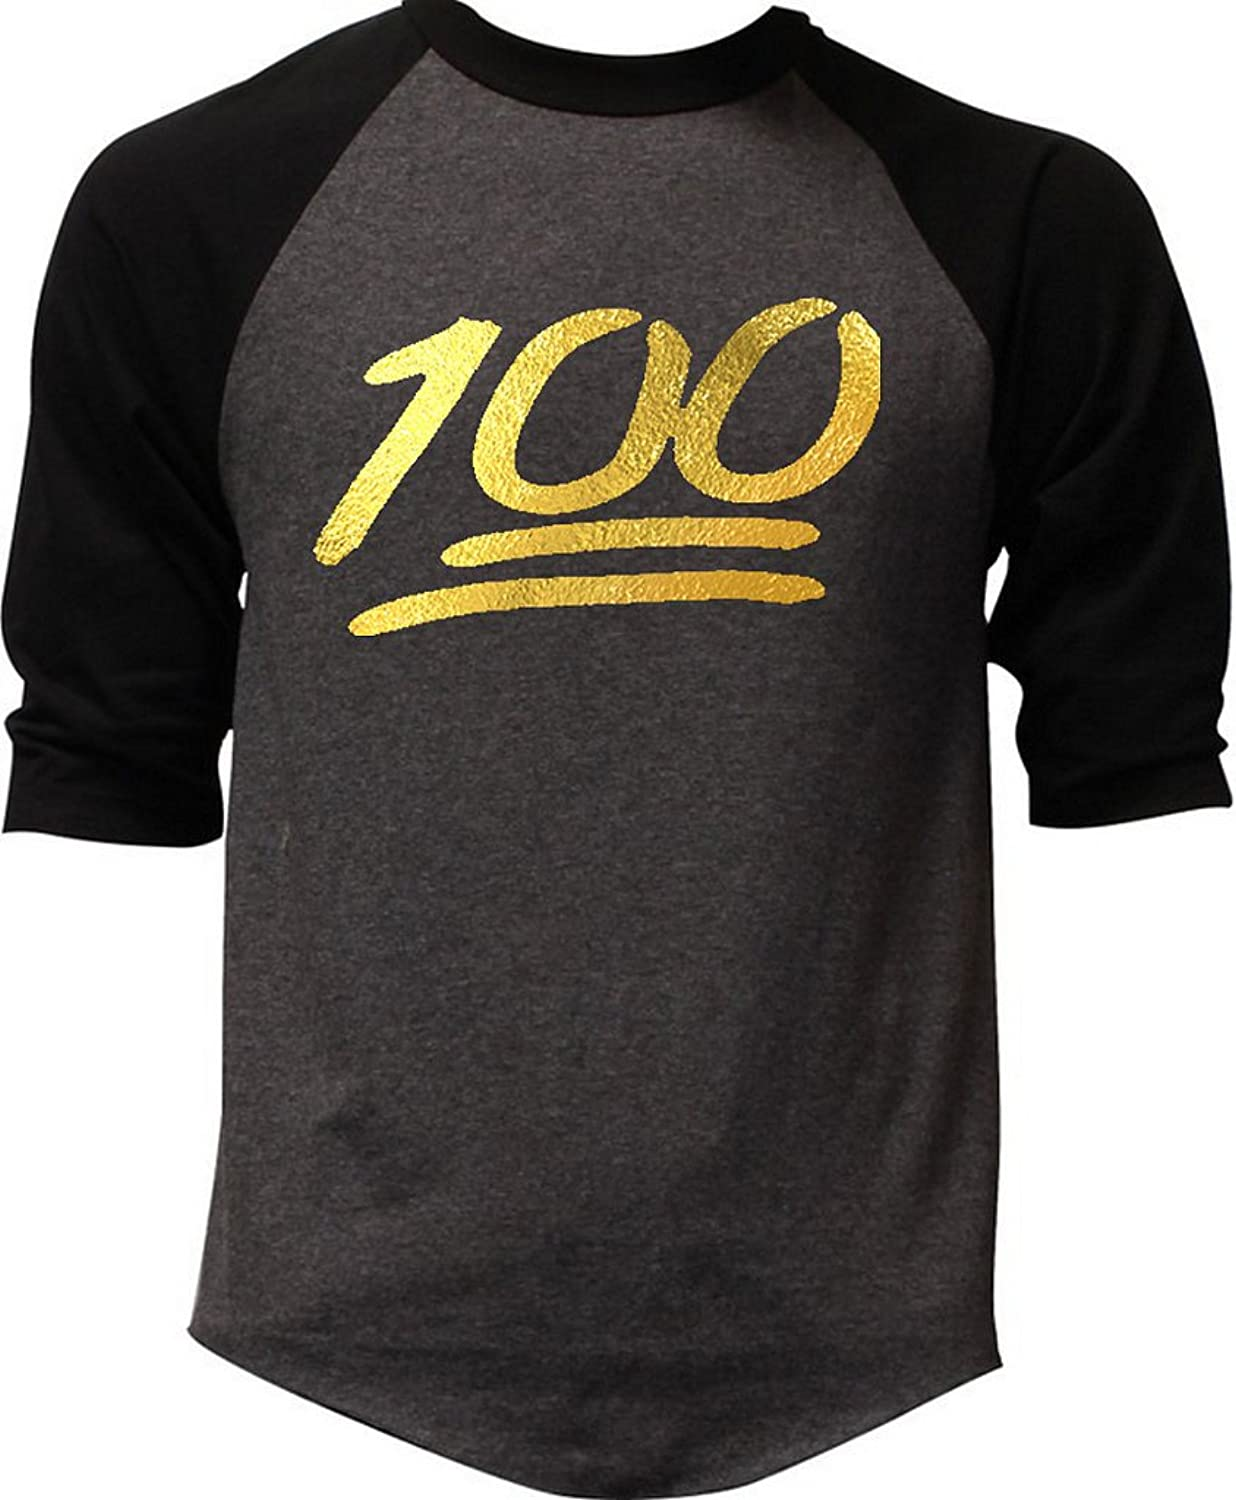 Gold Foil Emoji 100 Percent Men's Charcoal Raglan Baseball T-Shirt Charcoal